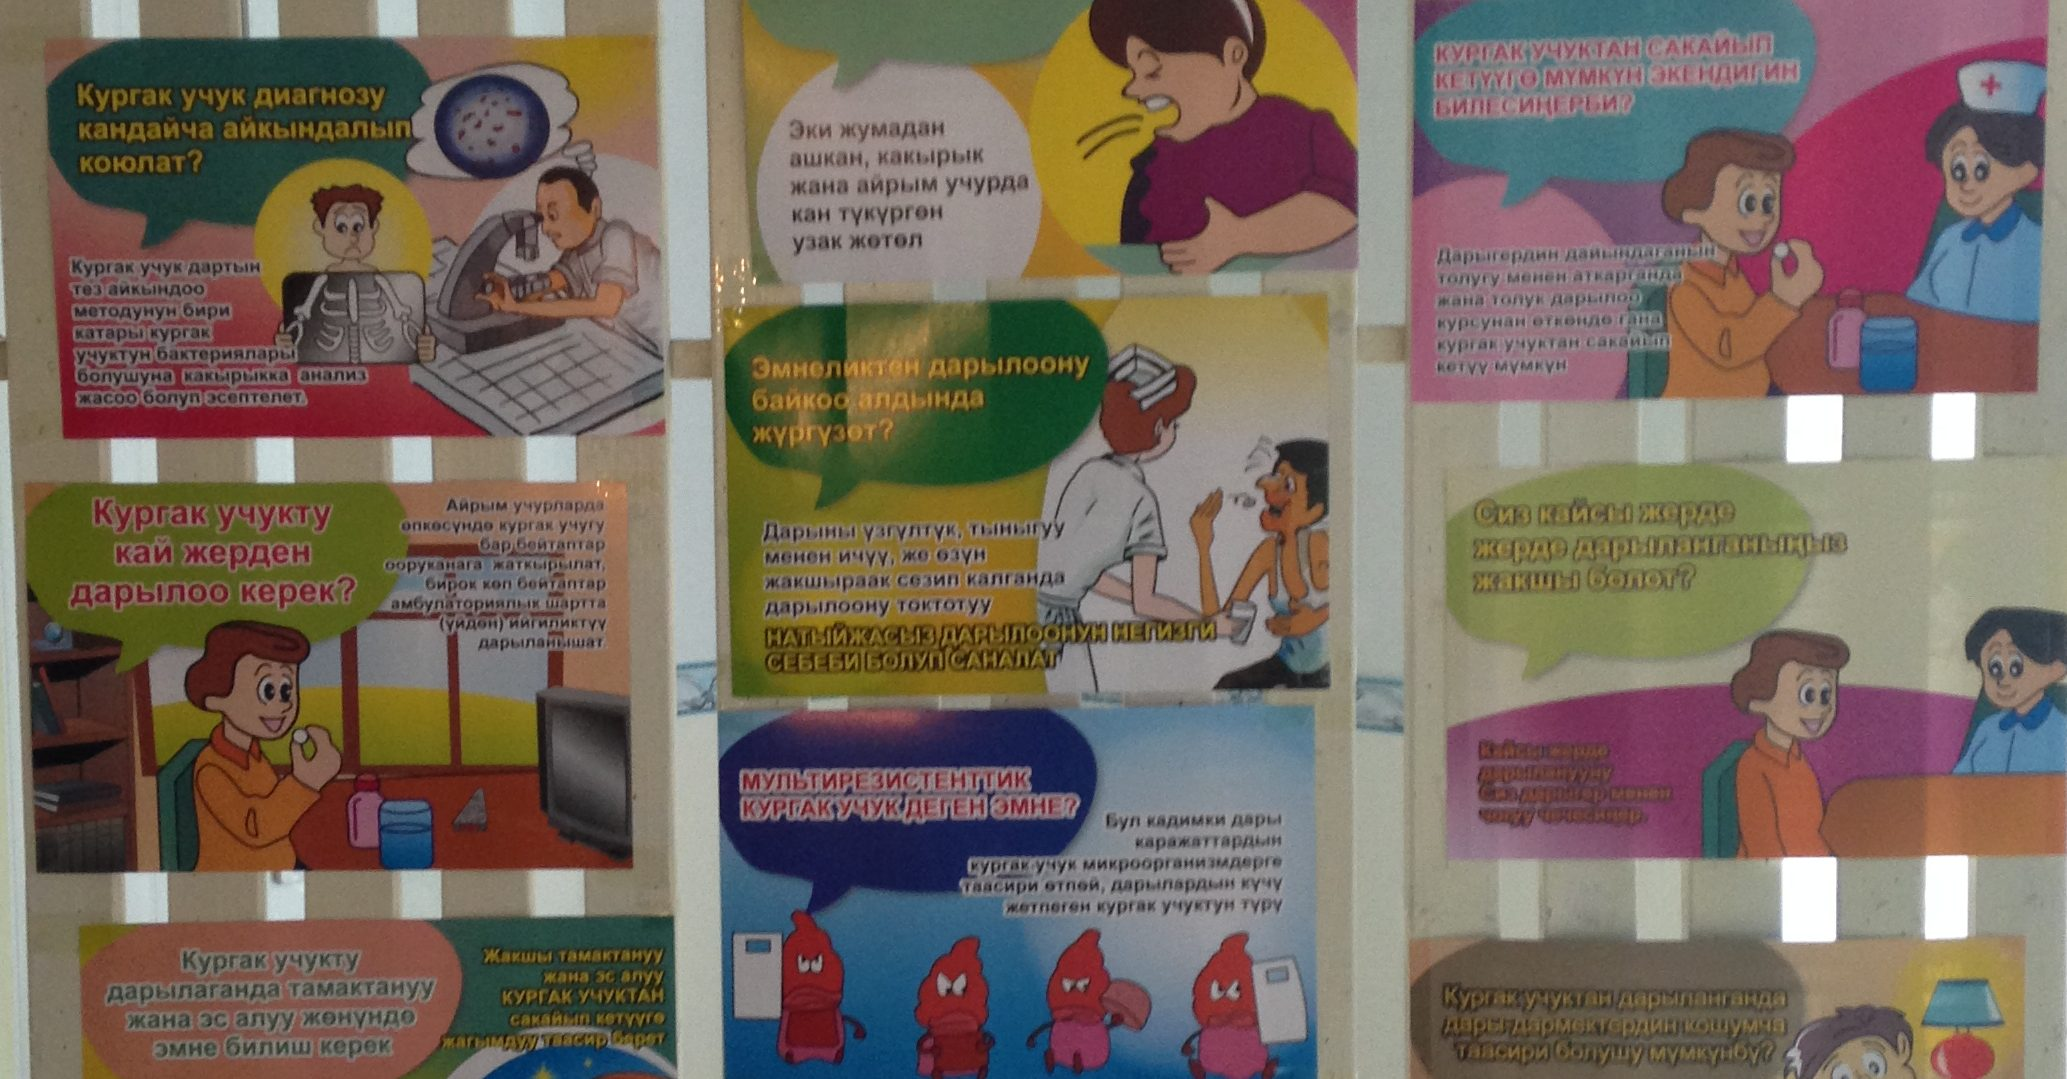 Russian language public health posters. Kind of blurry.